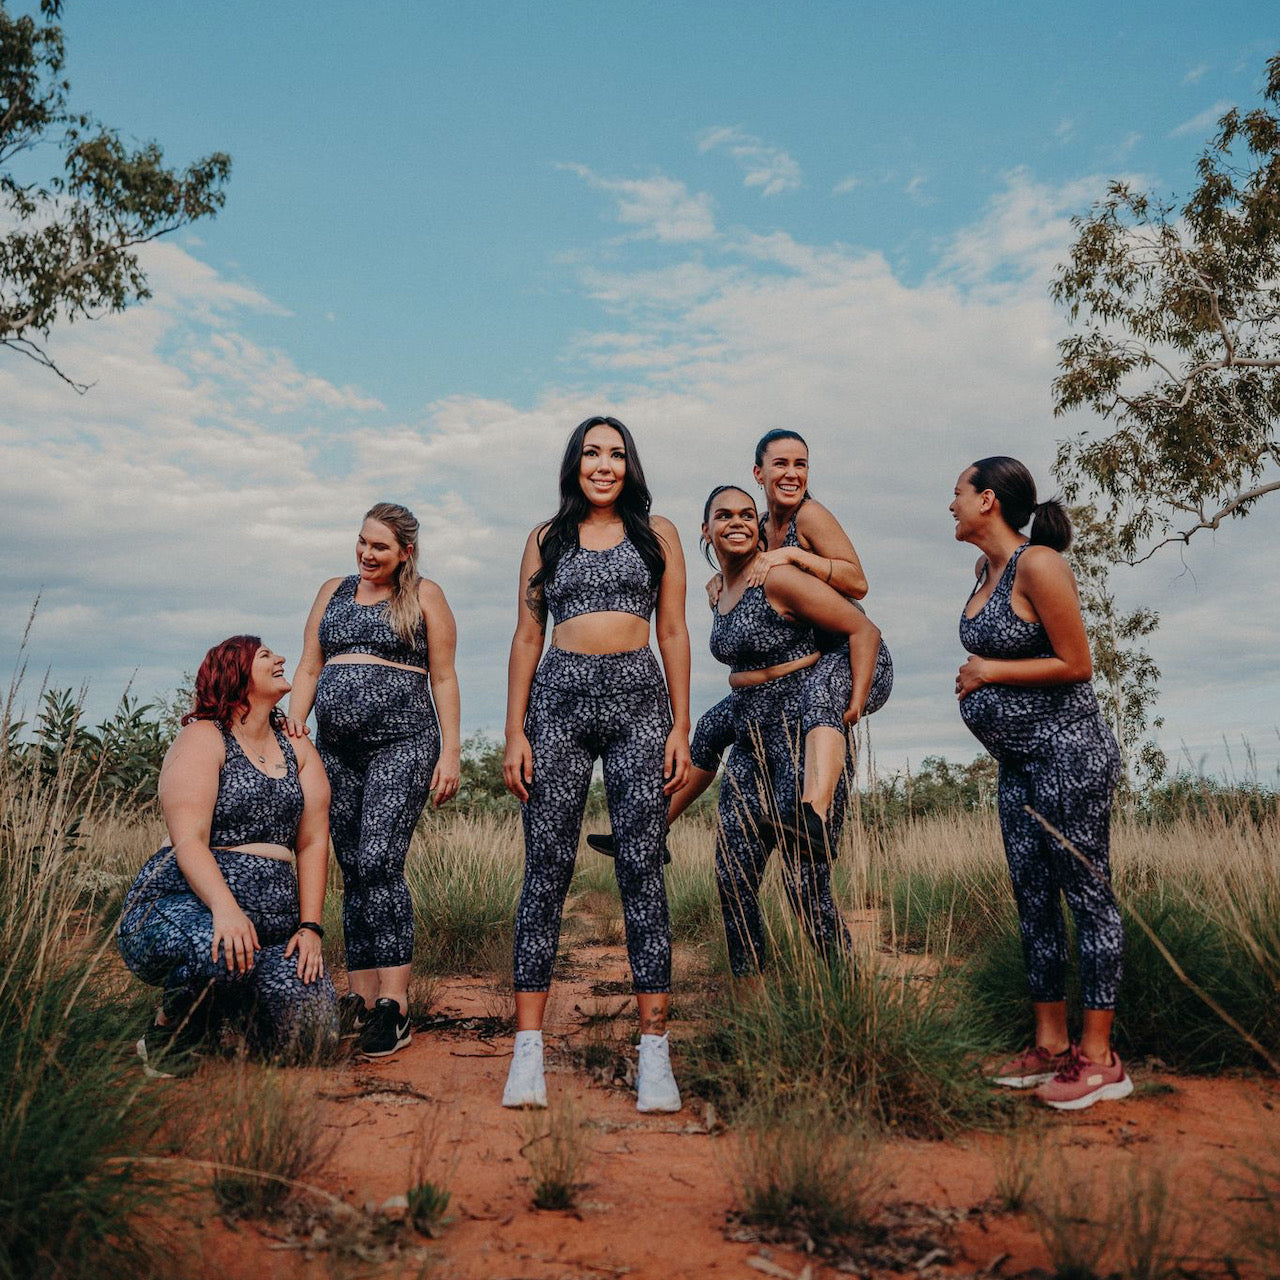 A group six women in various life stages wearing the same workout outfit by Active Truth in a dessert setting.